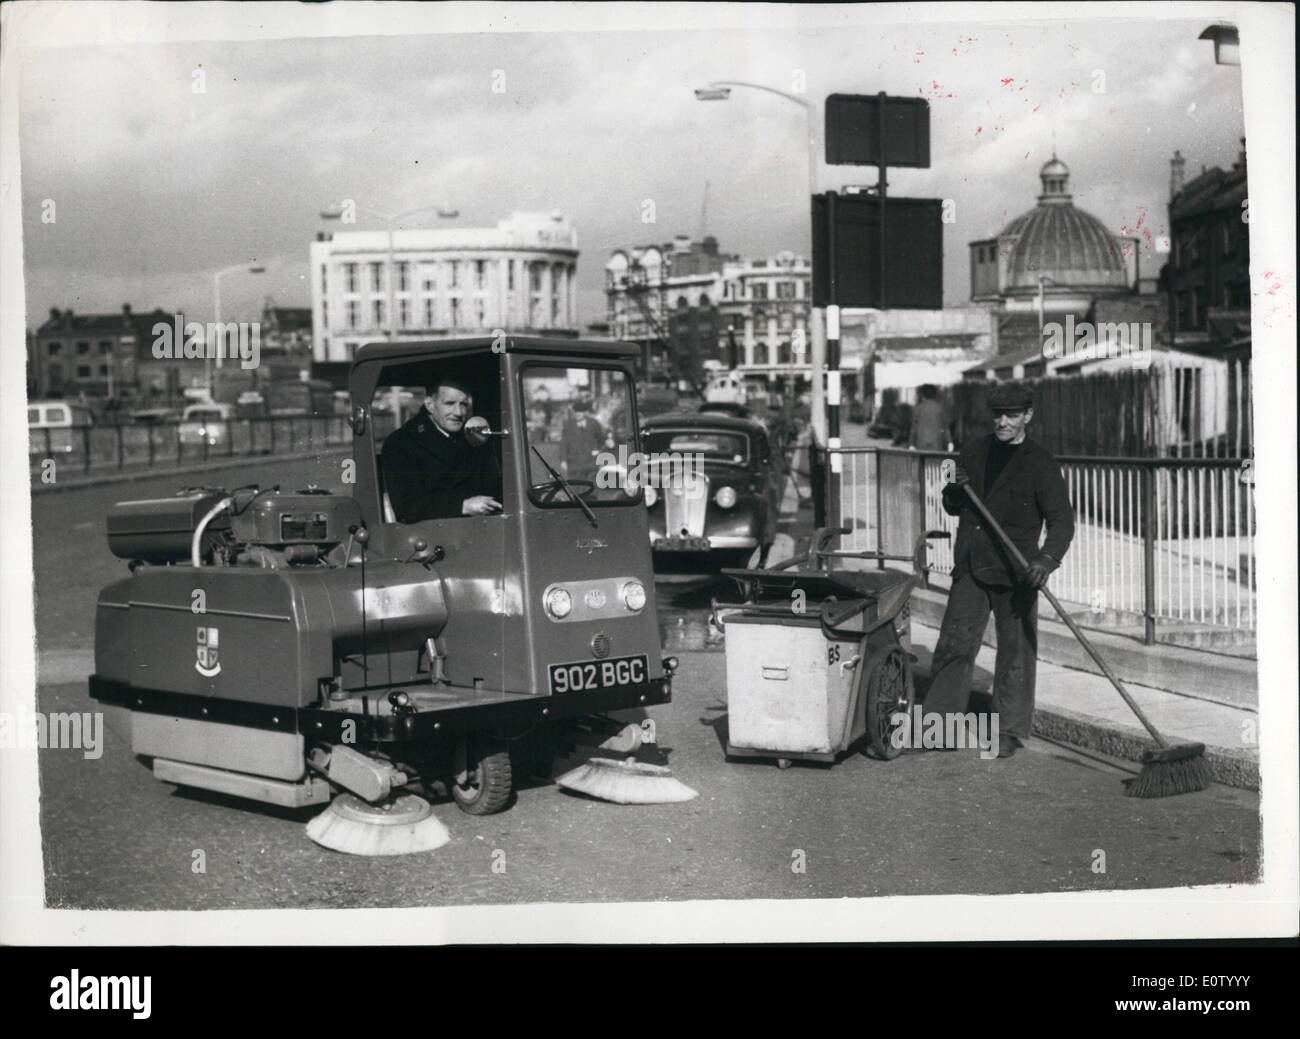 Oct. 10, 1960 - A completely new type of power sweeper, big enough to clean roads, yet sufficiently manoevrable to operate in confined spaces, has been purchased by Southwark Borough Council. Called the K.E.F. Wayne 706 it is equipped with a revolutionary type of brush mechanism that enables it to pick up anything from dust to empty bottles. The sweeper is being used in the subways at the Elephant and Castle Development Schems. Photo shows A road-sweeper works alongside the new power sweeper, during a demonstration at the Elephant and Castle today. - Stock Image